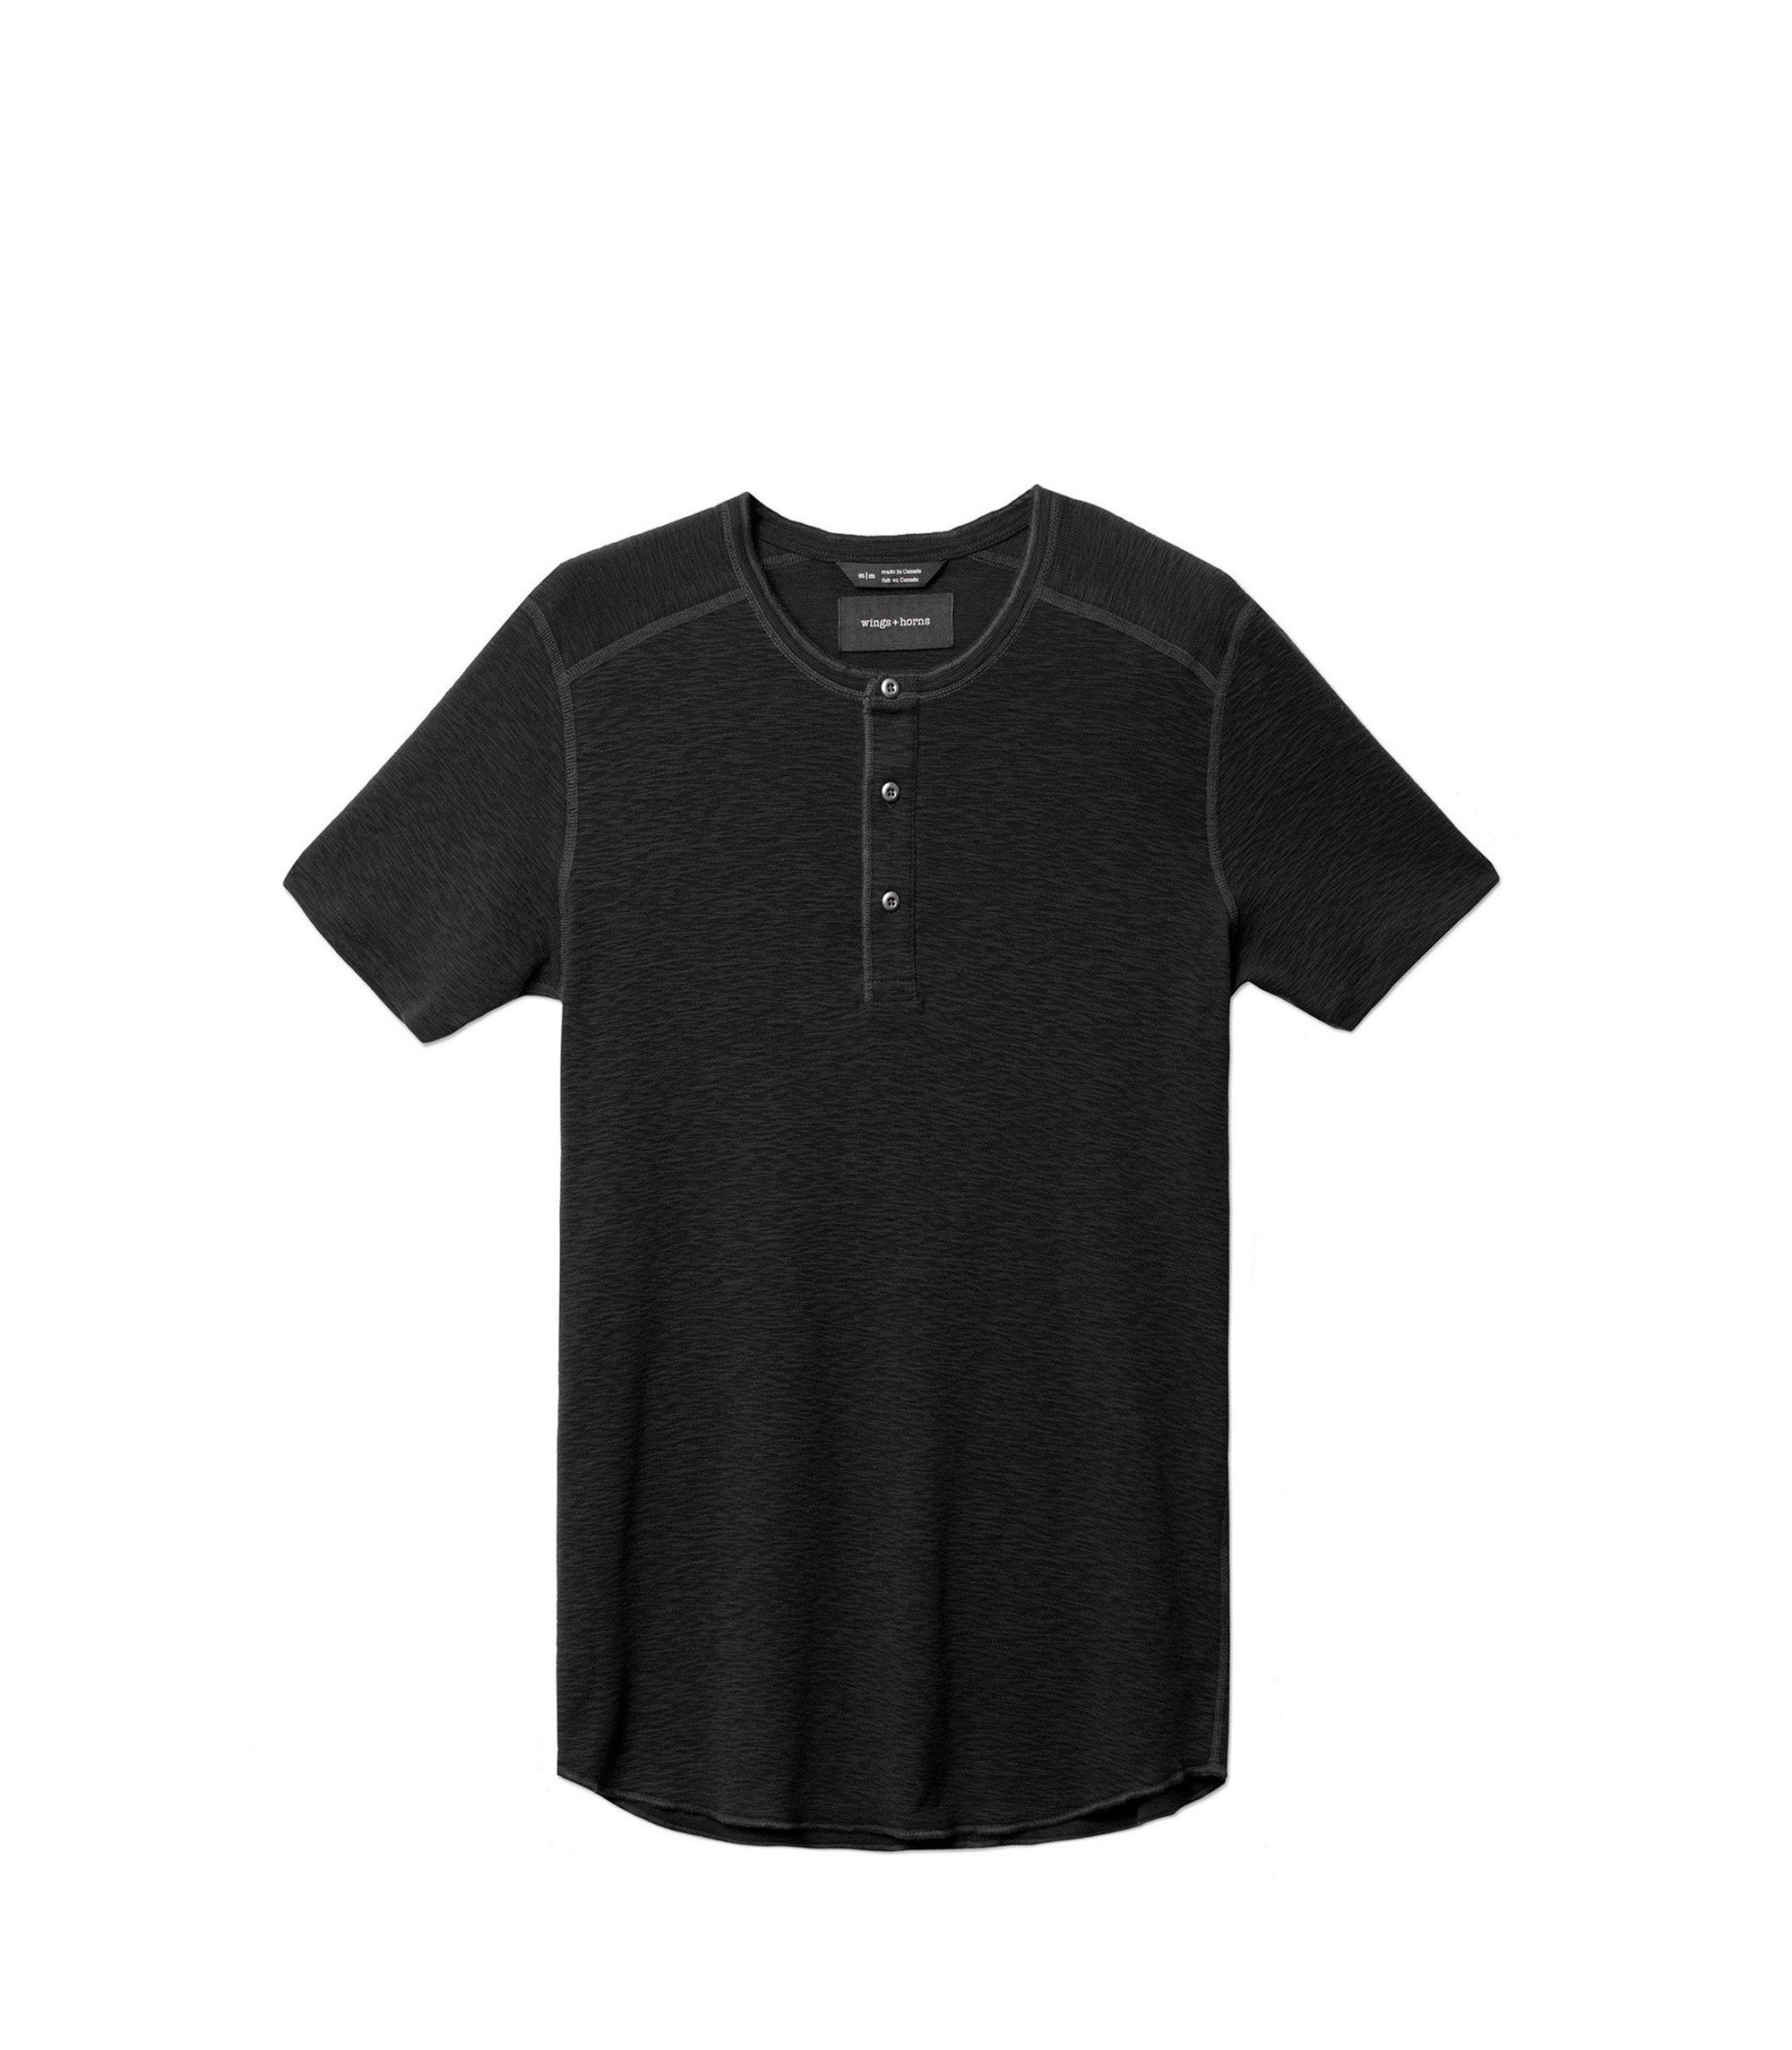 WINGS + HORNS M'S T-SHIRTS Blk XL BASE S/S HENLEY